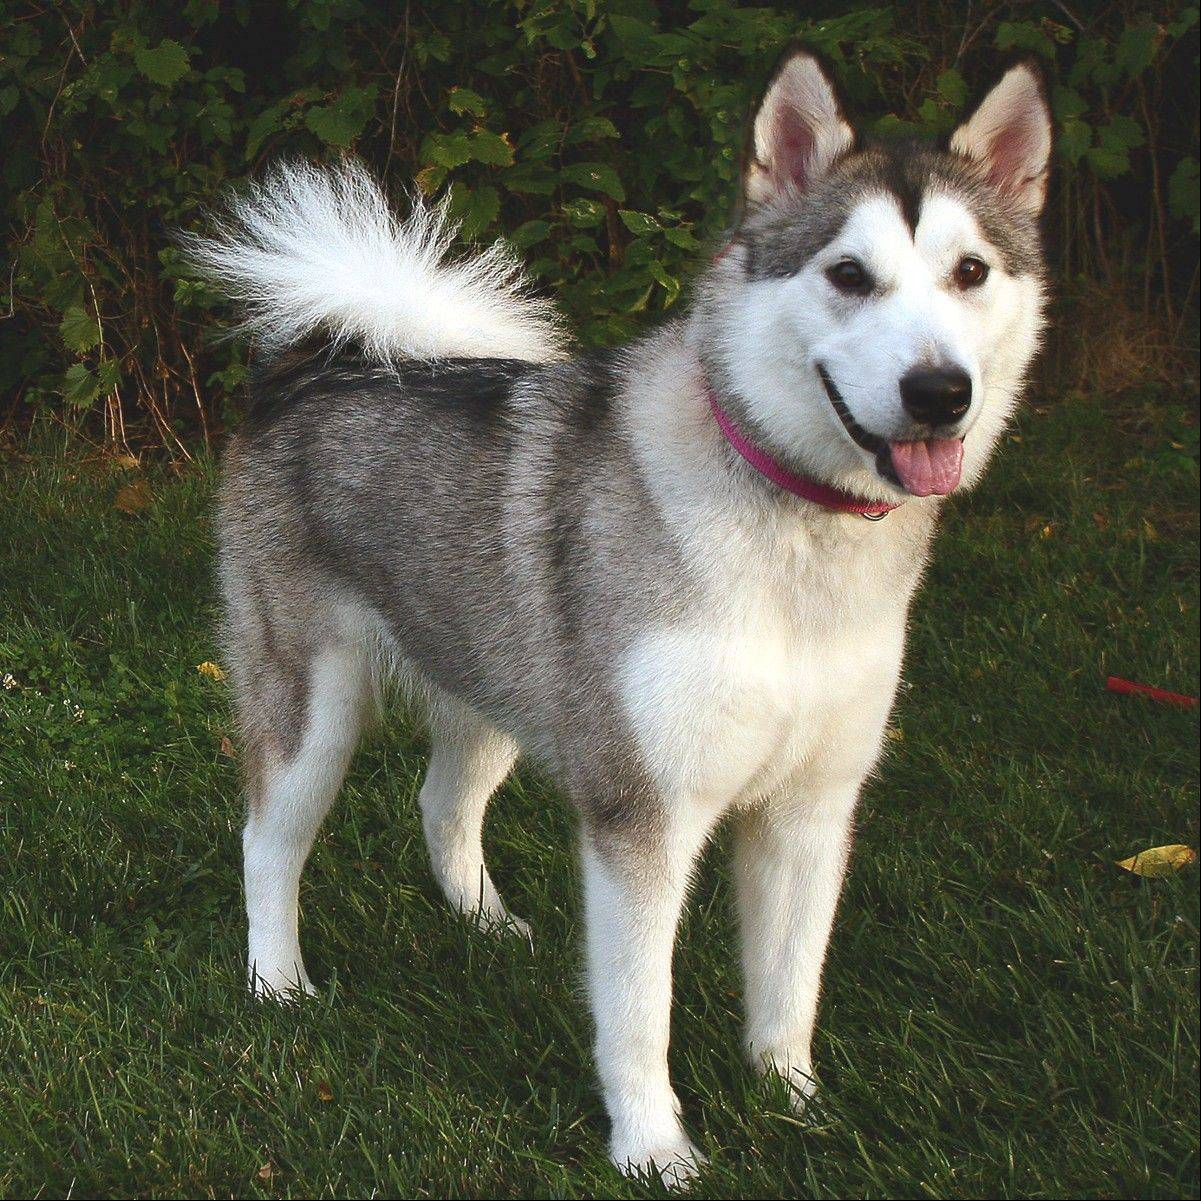 Mya is a female Alaskan malamute who is about 1� years old and weighs around 73 pounds.